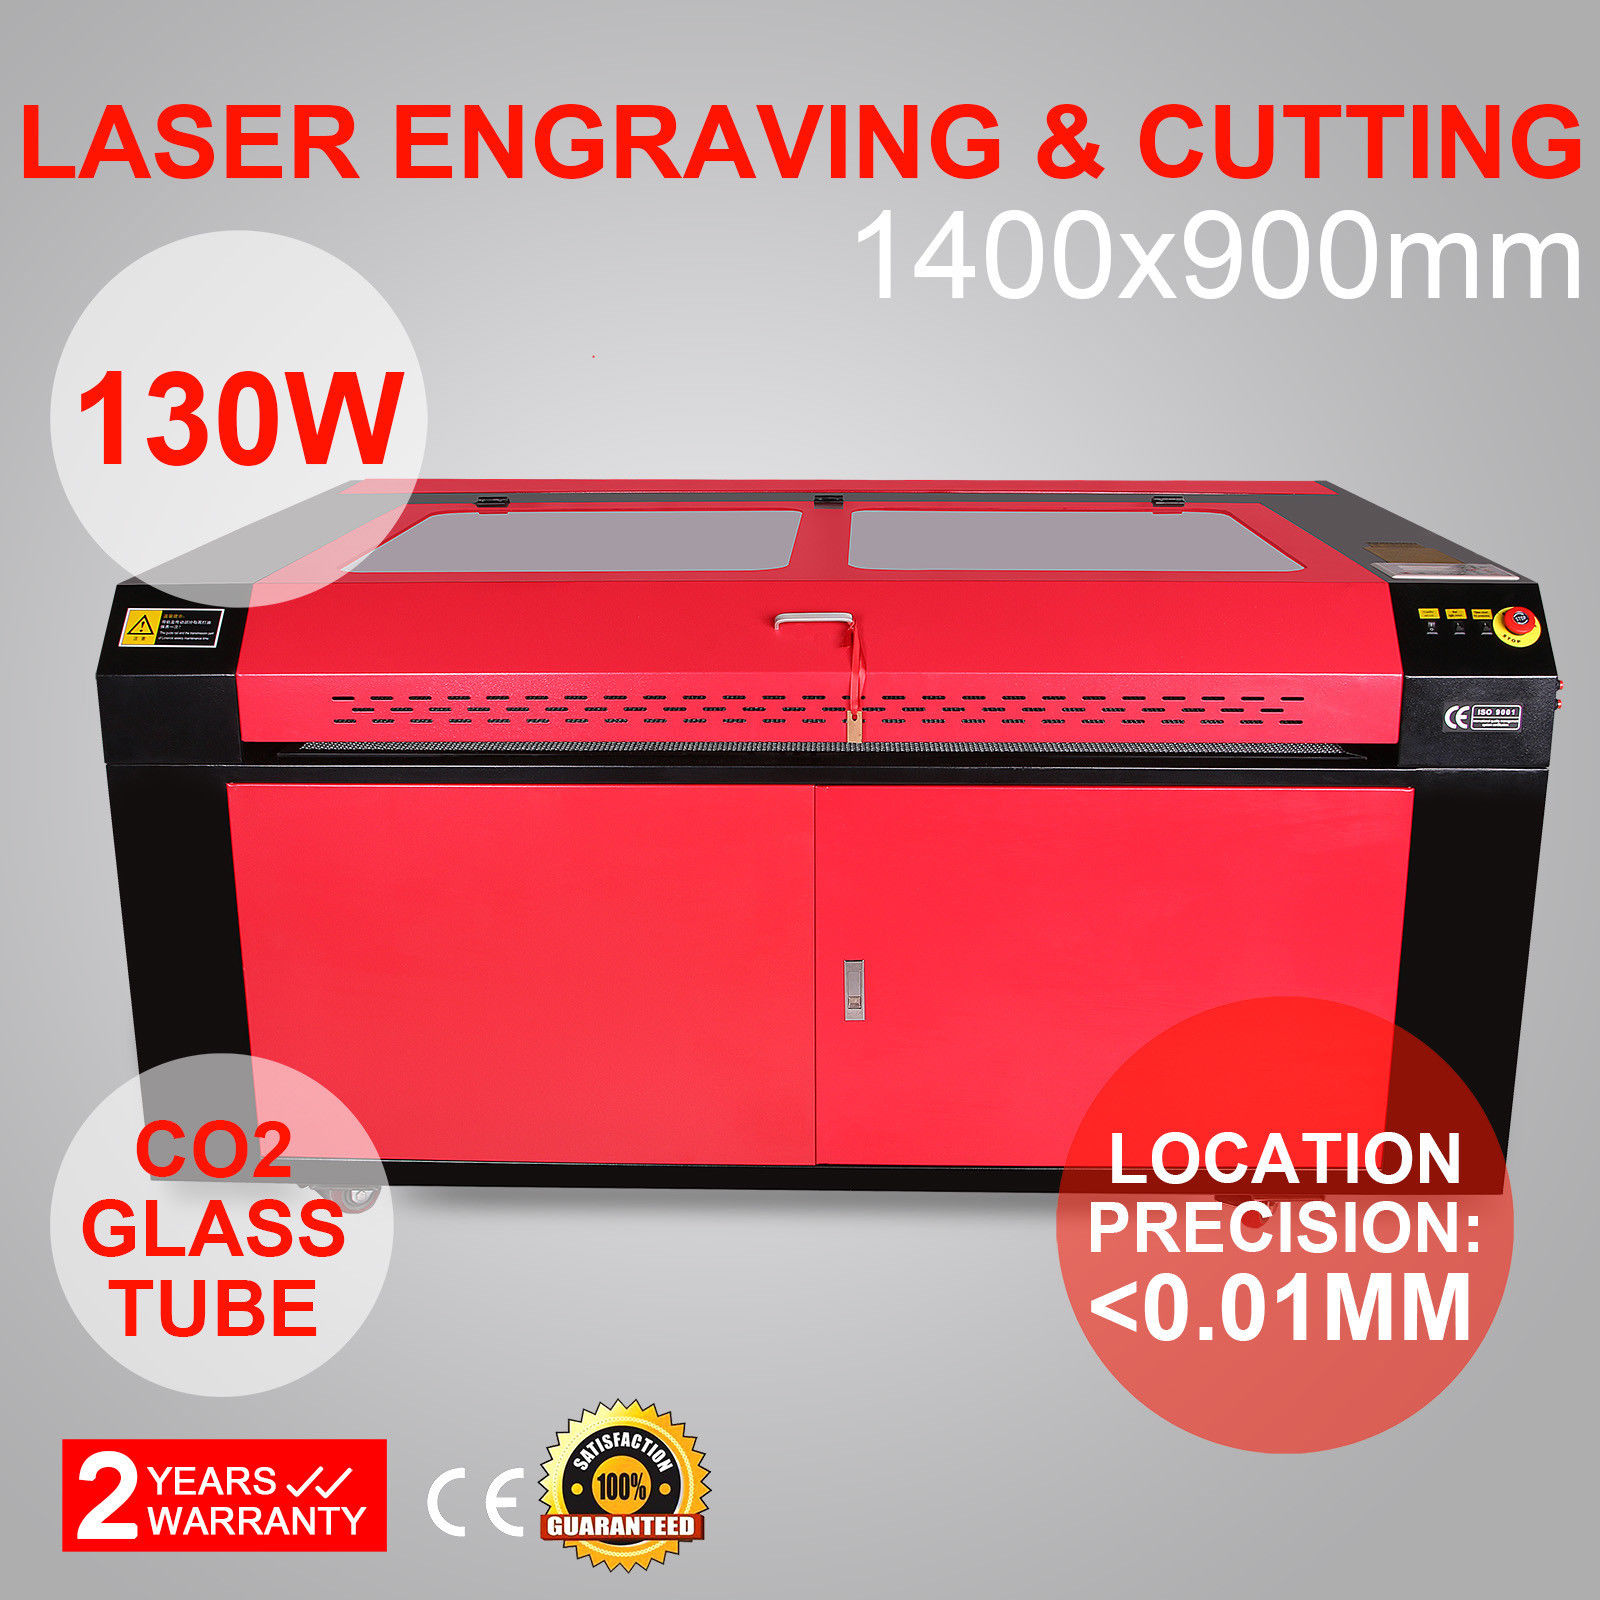 130W CO2 Laser Engraving Cutting Machine 1400x900mm Wood Working Crafts Printer Cutter USB Port